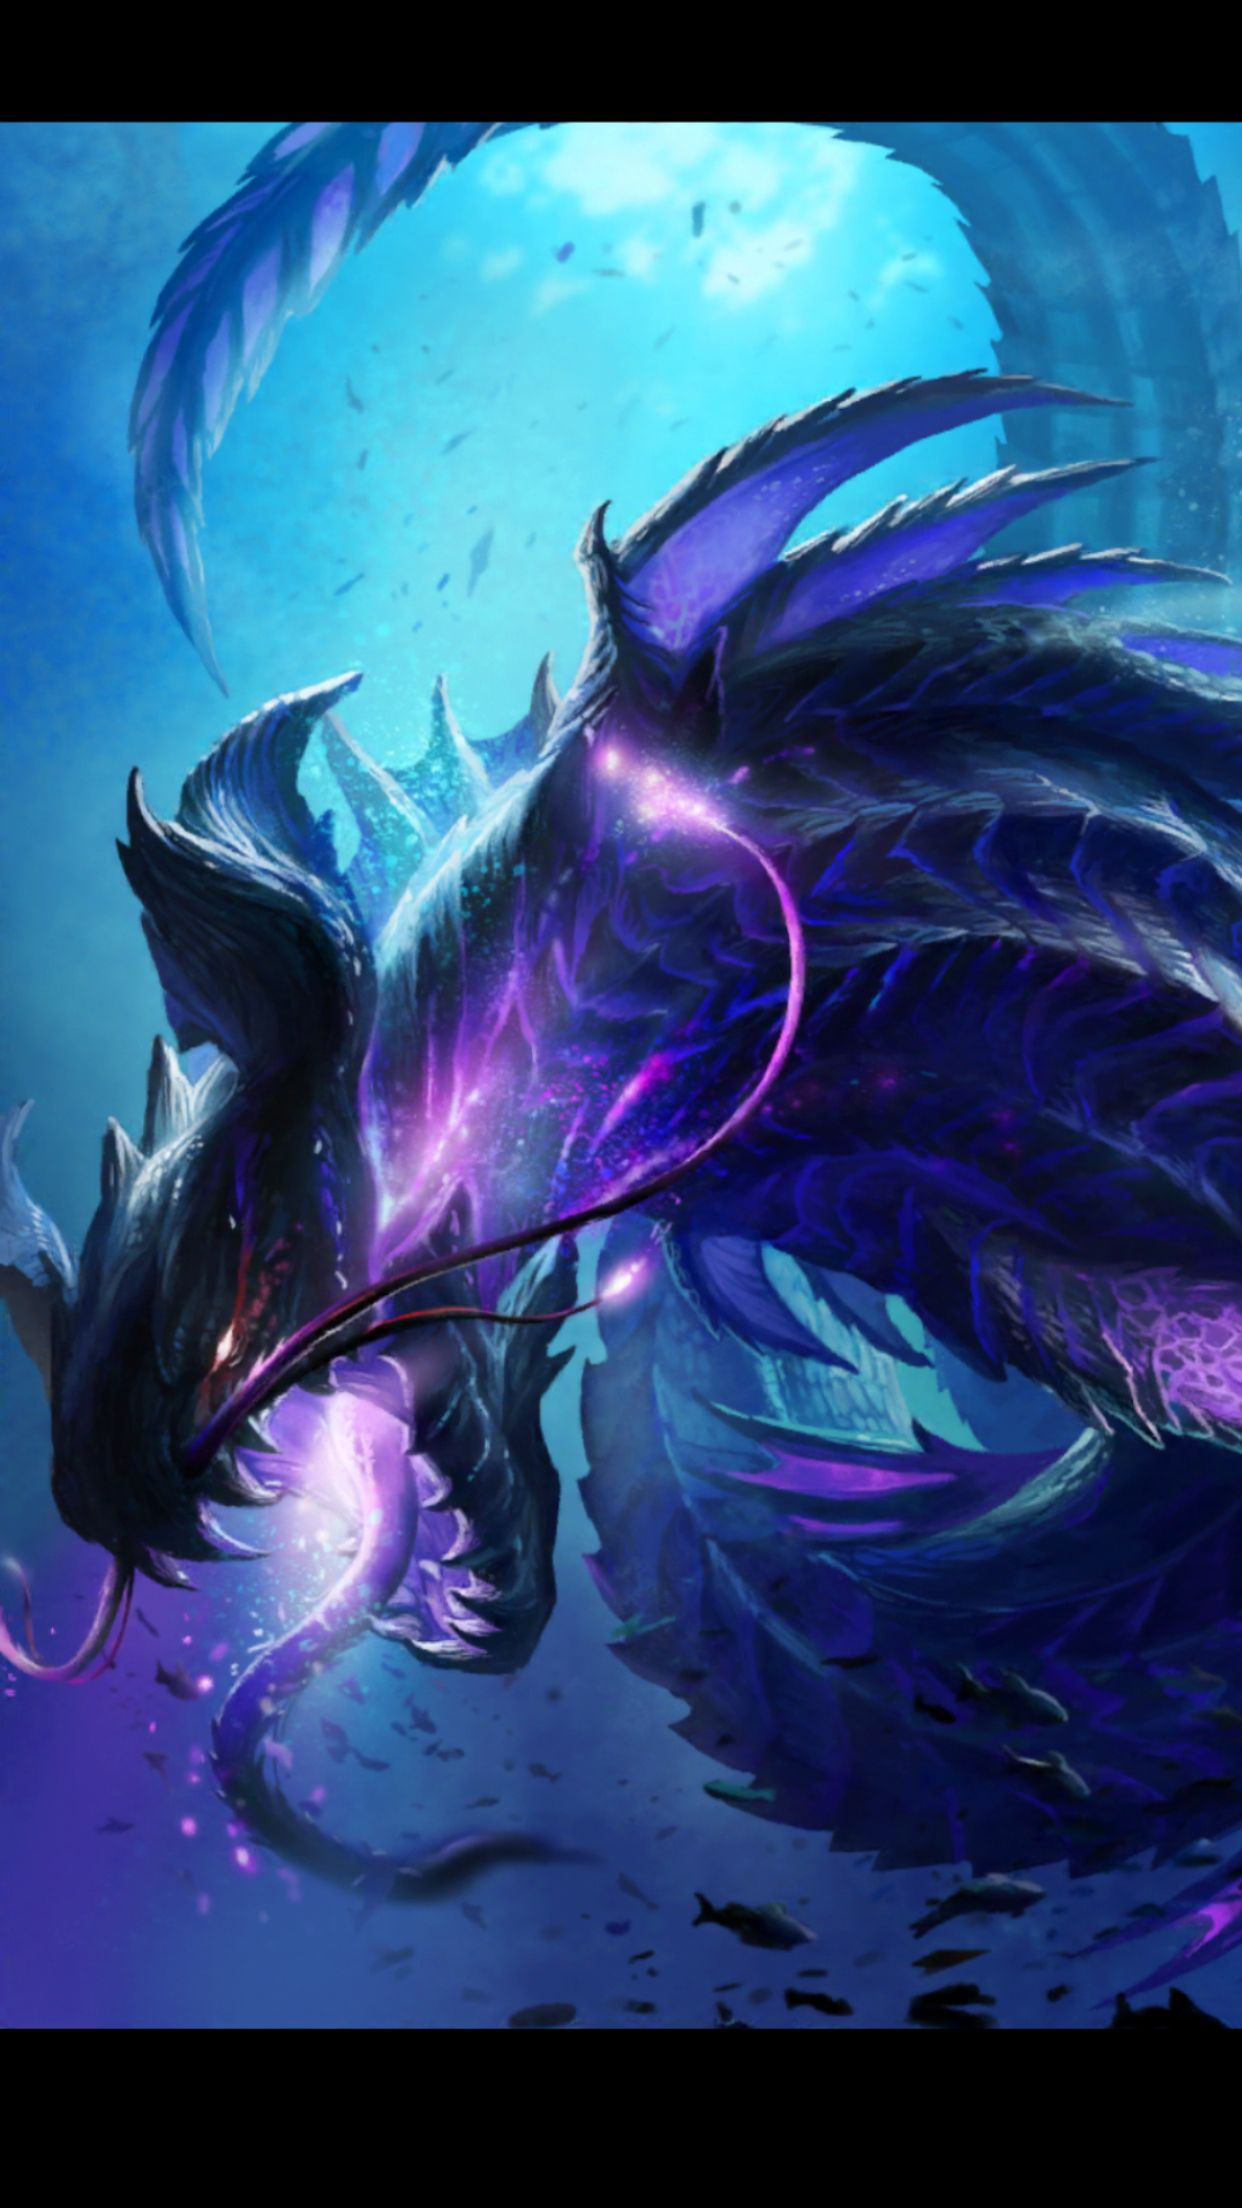 Blue Dragon Awesome Fierce Brutal Fantasy Sci-fi And Purple Concept Art